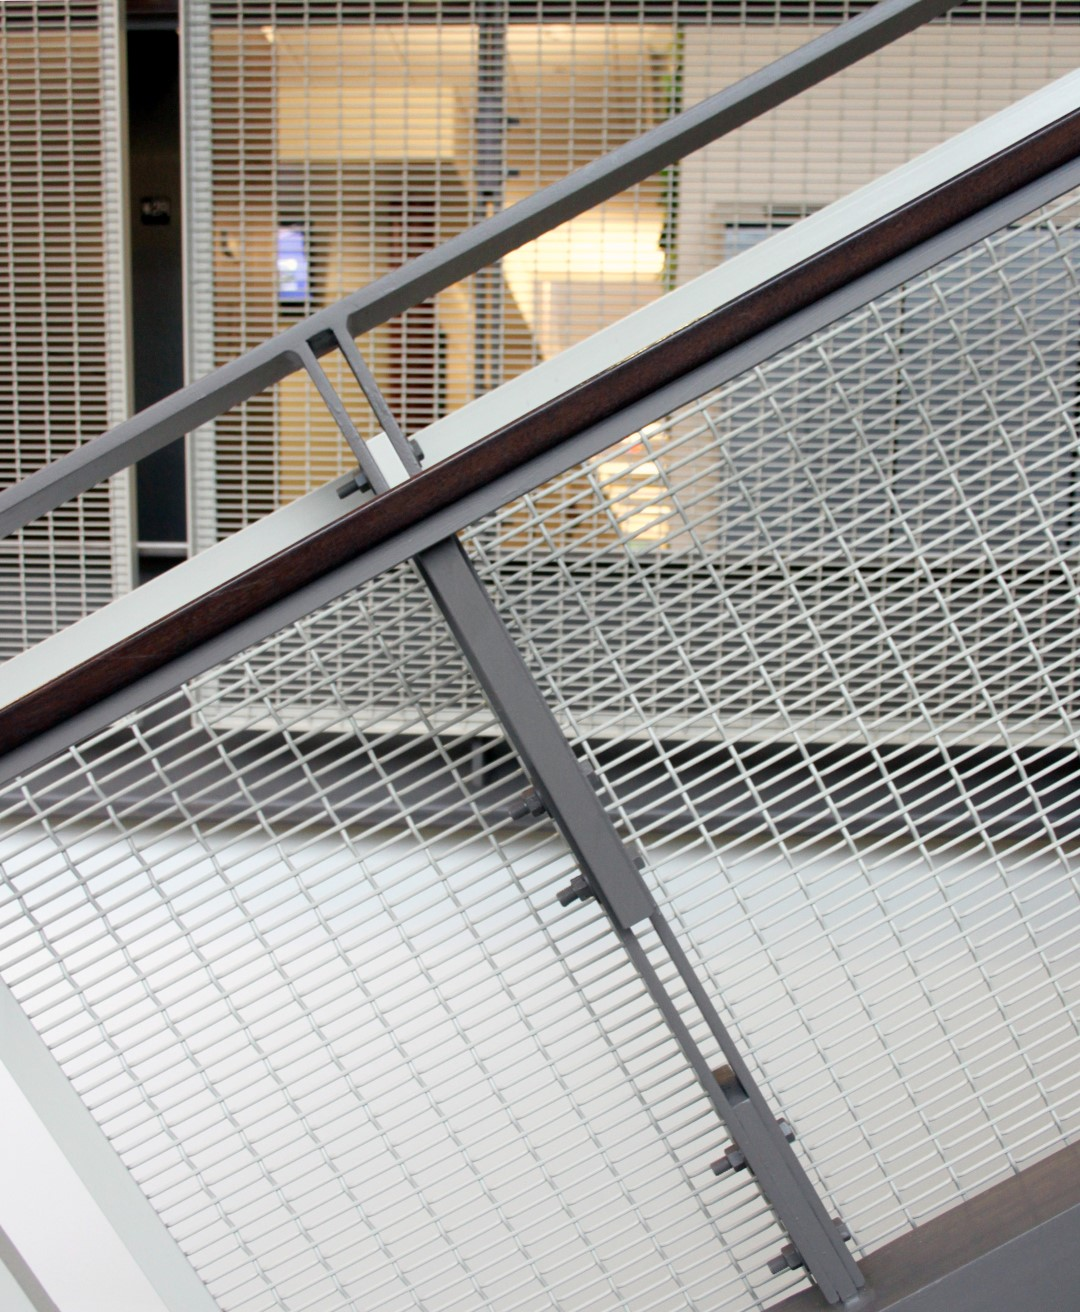 The  FPZ-16 wire mesh used at Frank A. Cassell Hall has rectangular openings more than three times as long as they are tall.